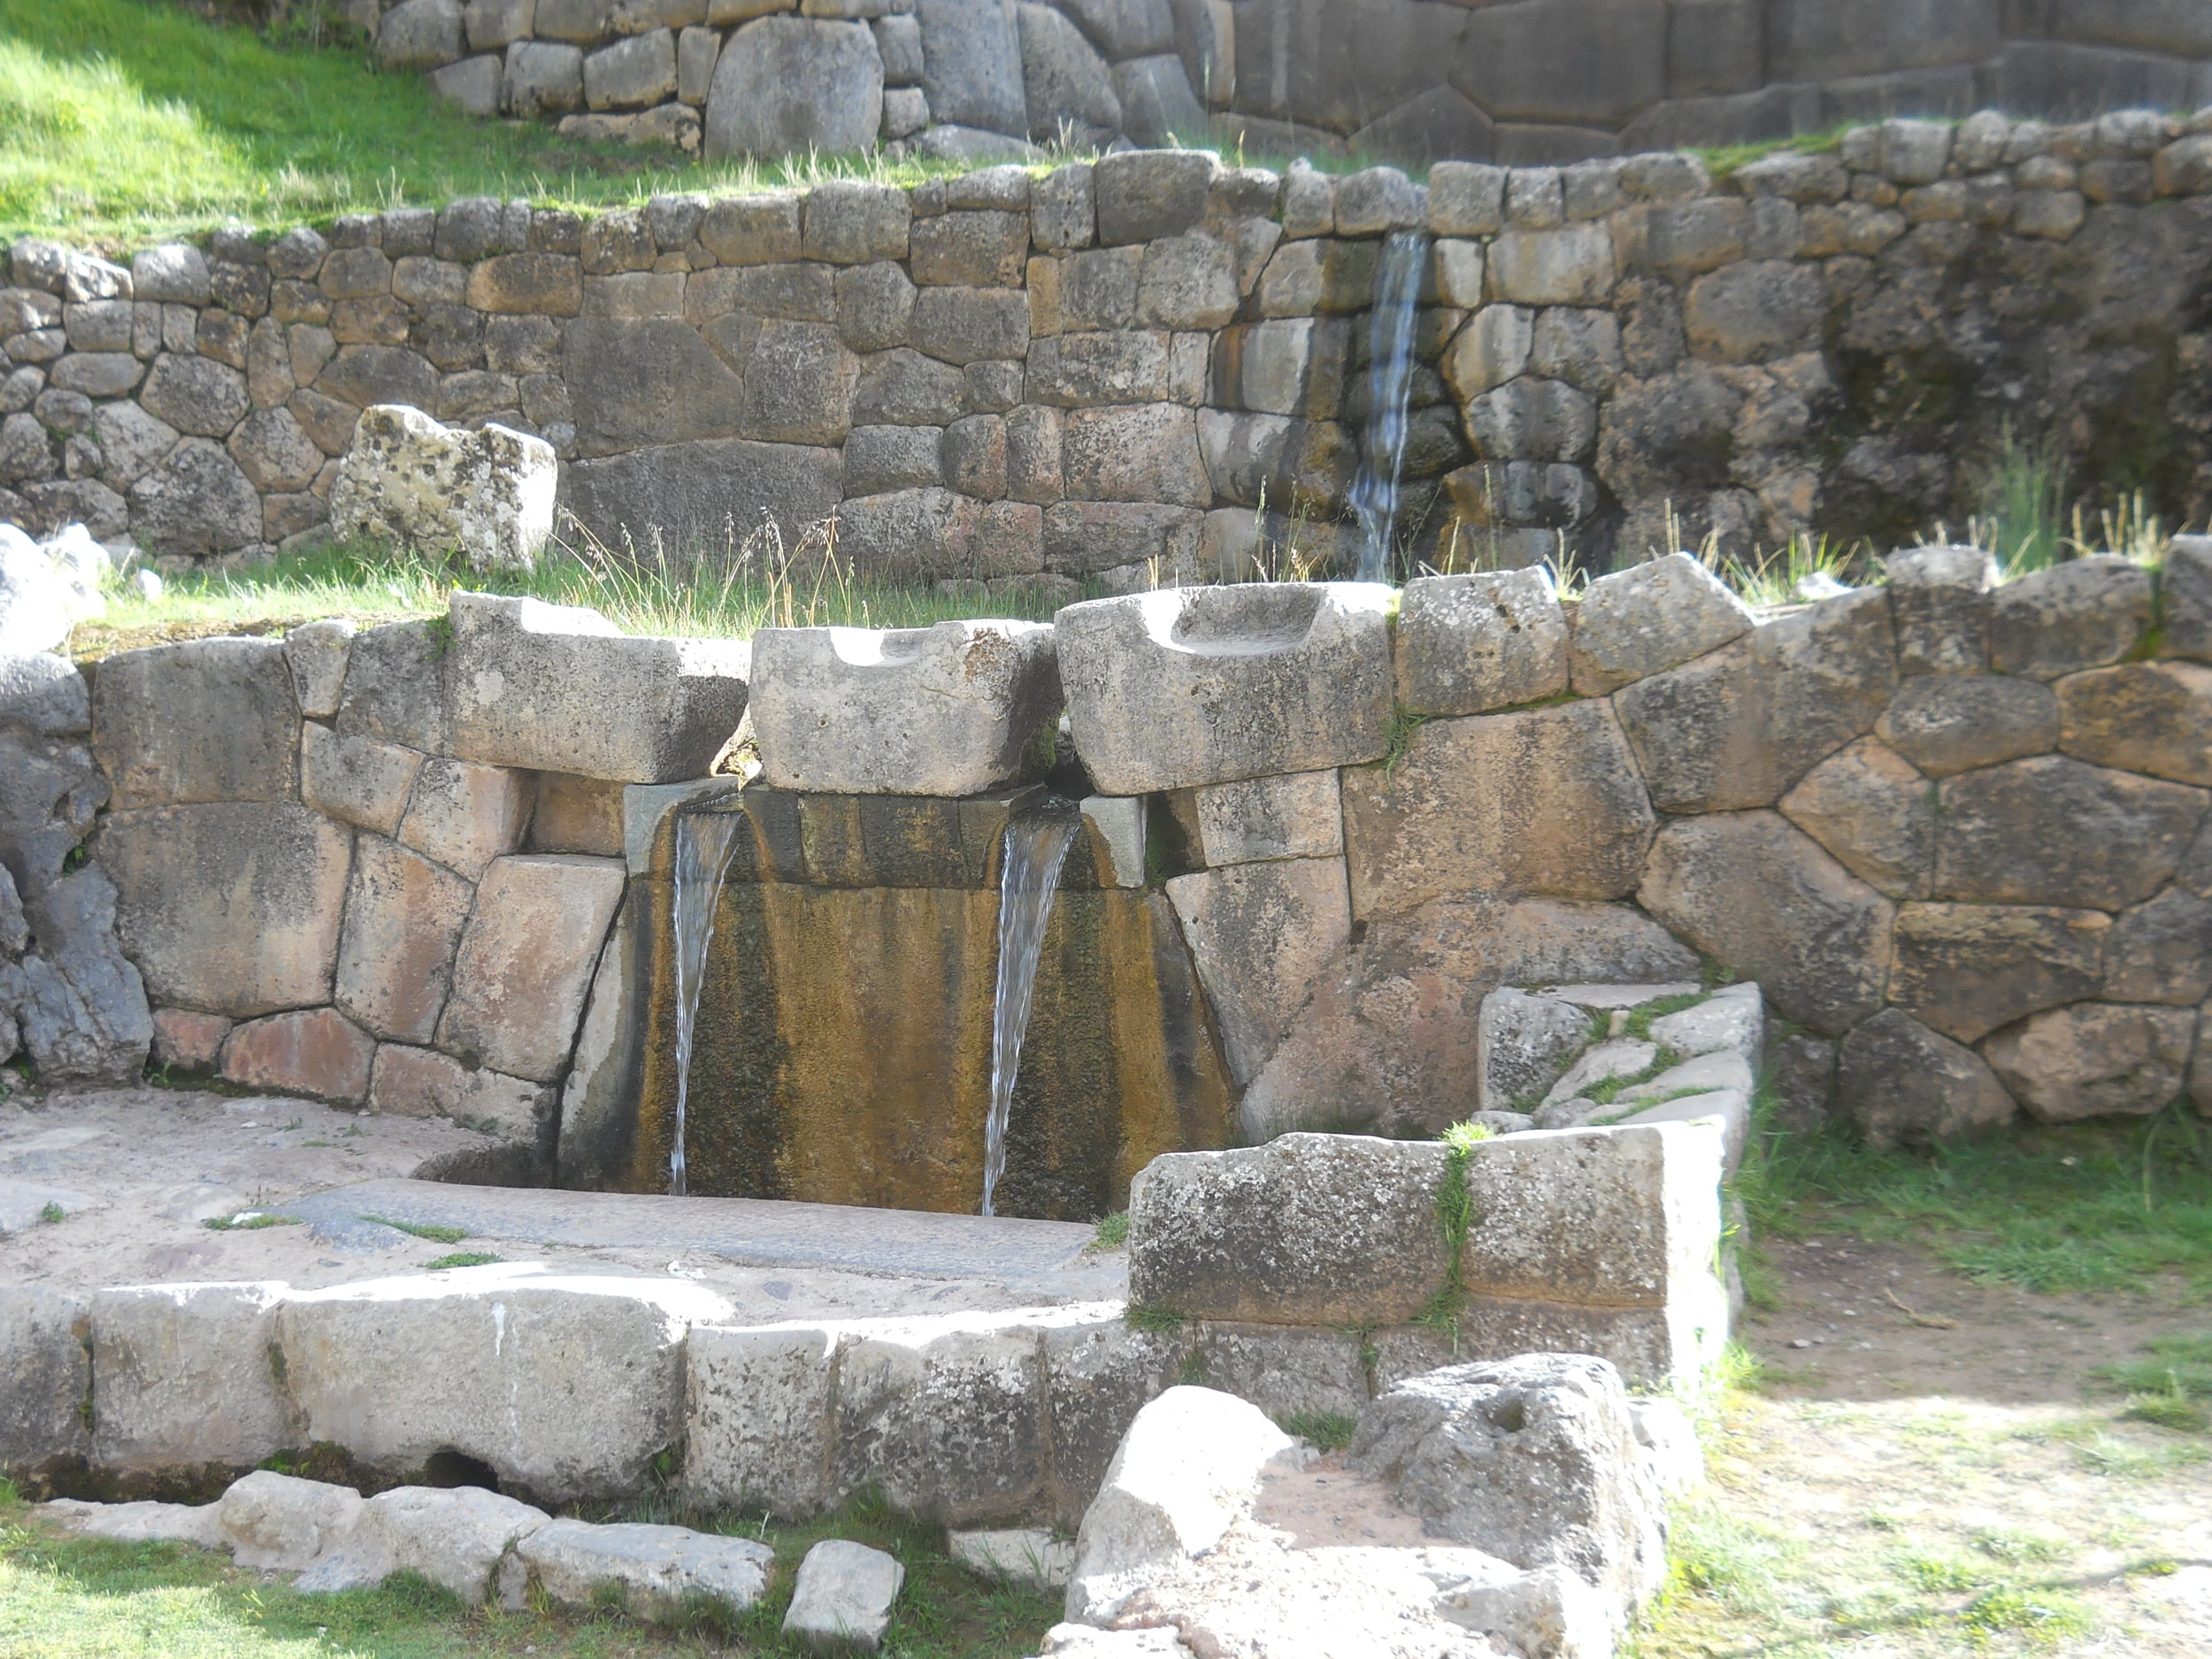 In Ollantaytambo there is a water system built in the Inca period. Photo: Fernando J. Rojas